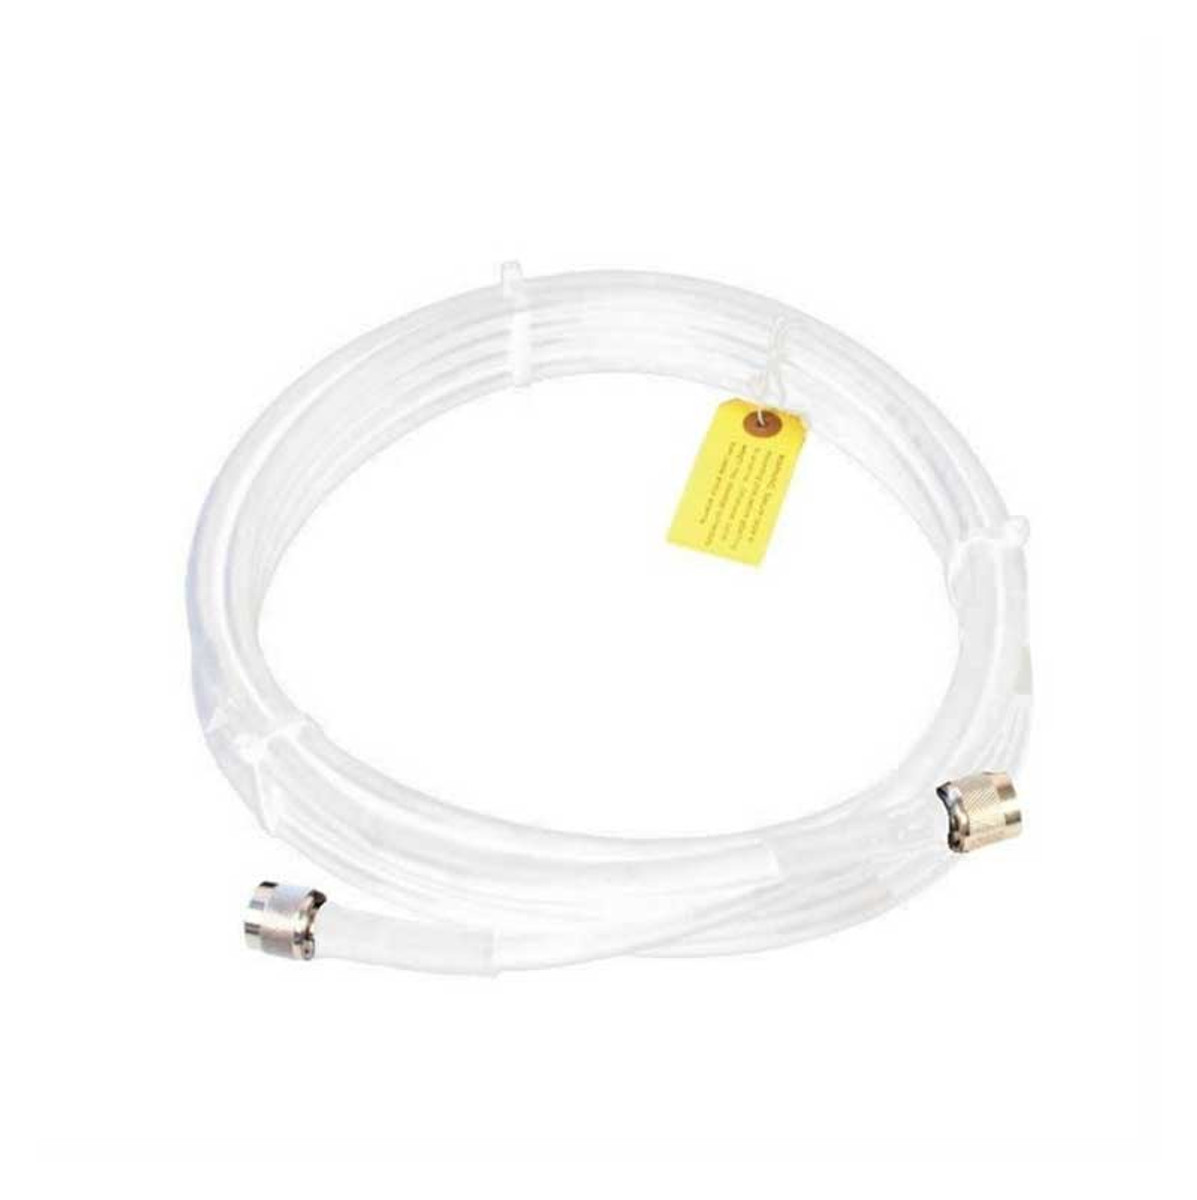 Wilson 952420 20-Foot WILSON400 Ultra Low Loss Coaxial Cable N Male ''Î'''_to N Male White, main